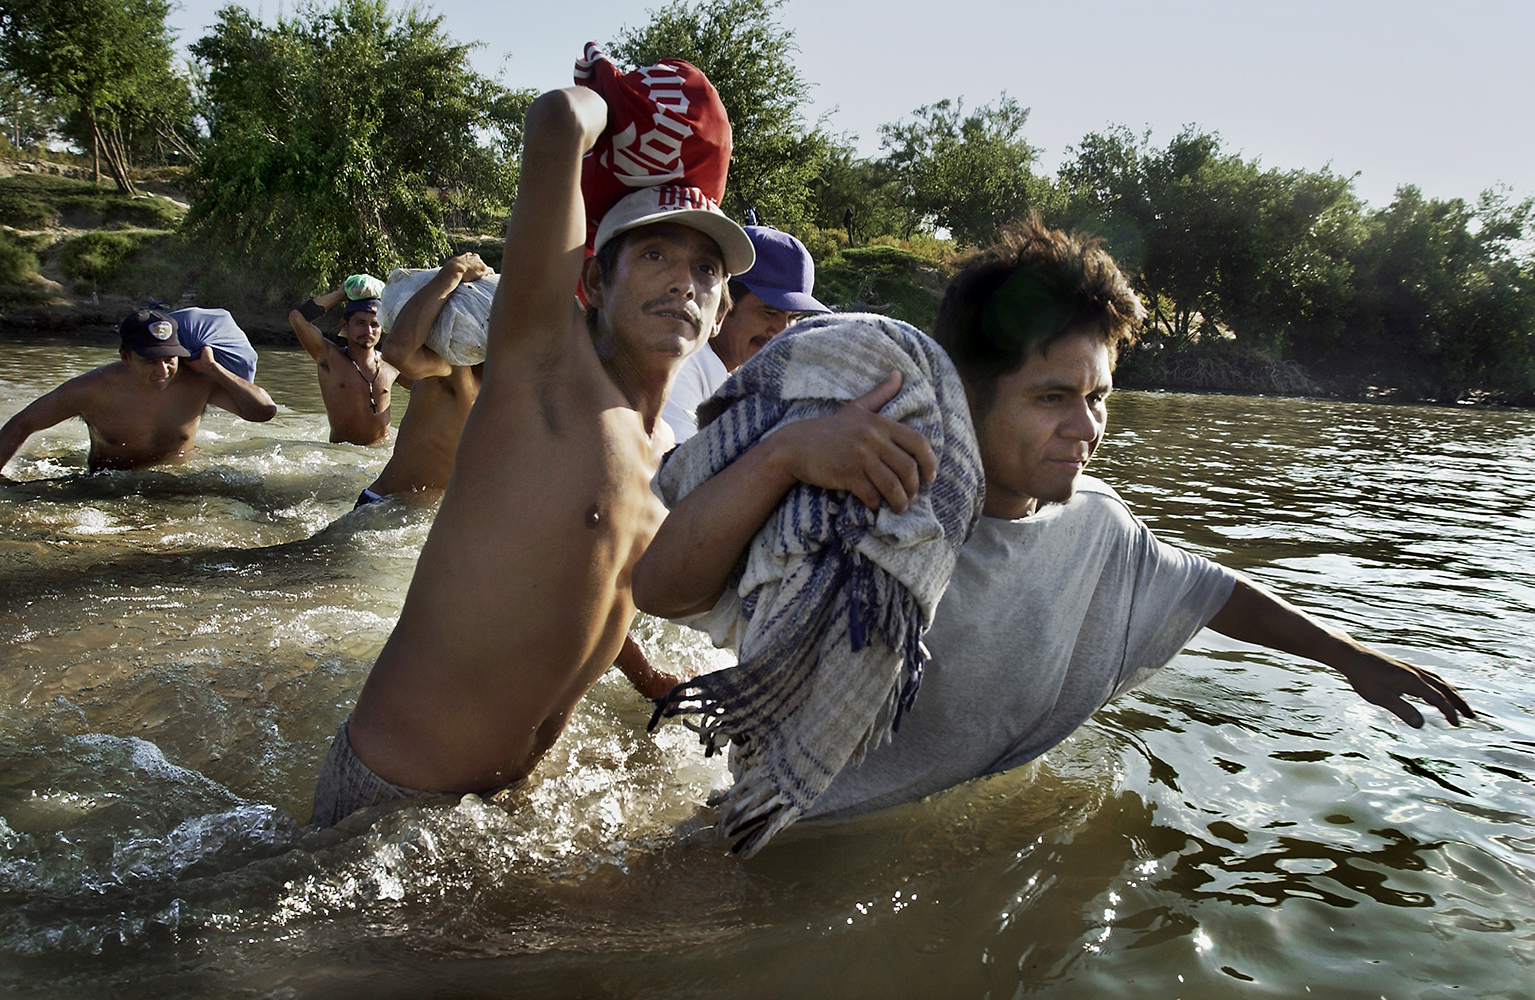 {quote}IN OUR OWN BACKYARD: U.S. Poverty in the 21st Century{quote}Desperately poor illiegal  imigrants make the treacherous crossing from Mexico to the United States on the Rio Grande River near Laredo in South Texas.